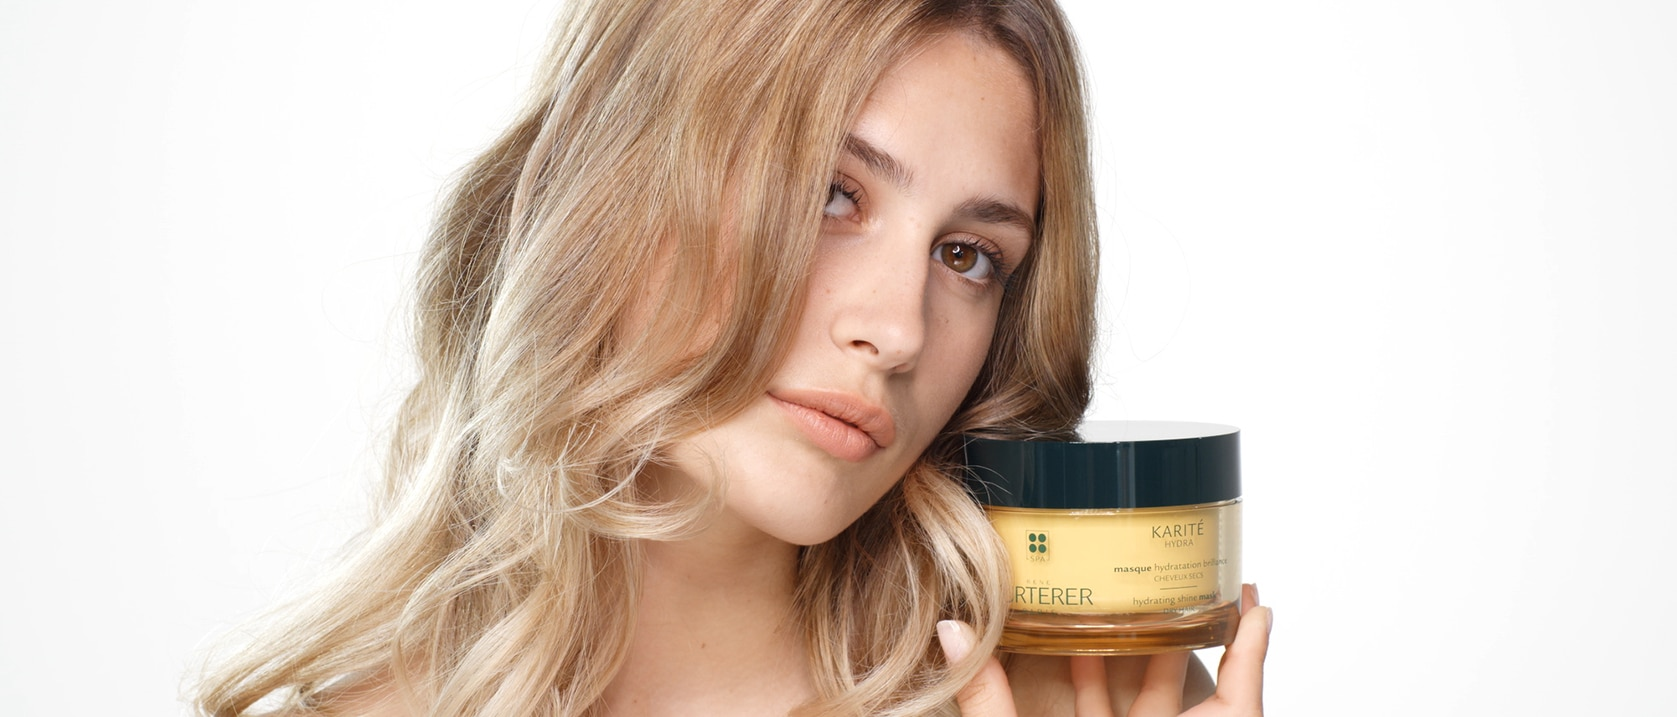 KARITÉ HYDRA masque Hydratation brillance pot video application  | René Furterer